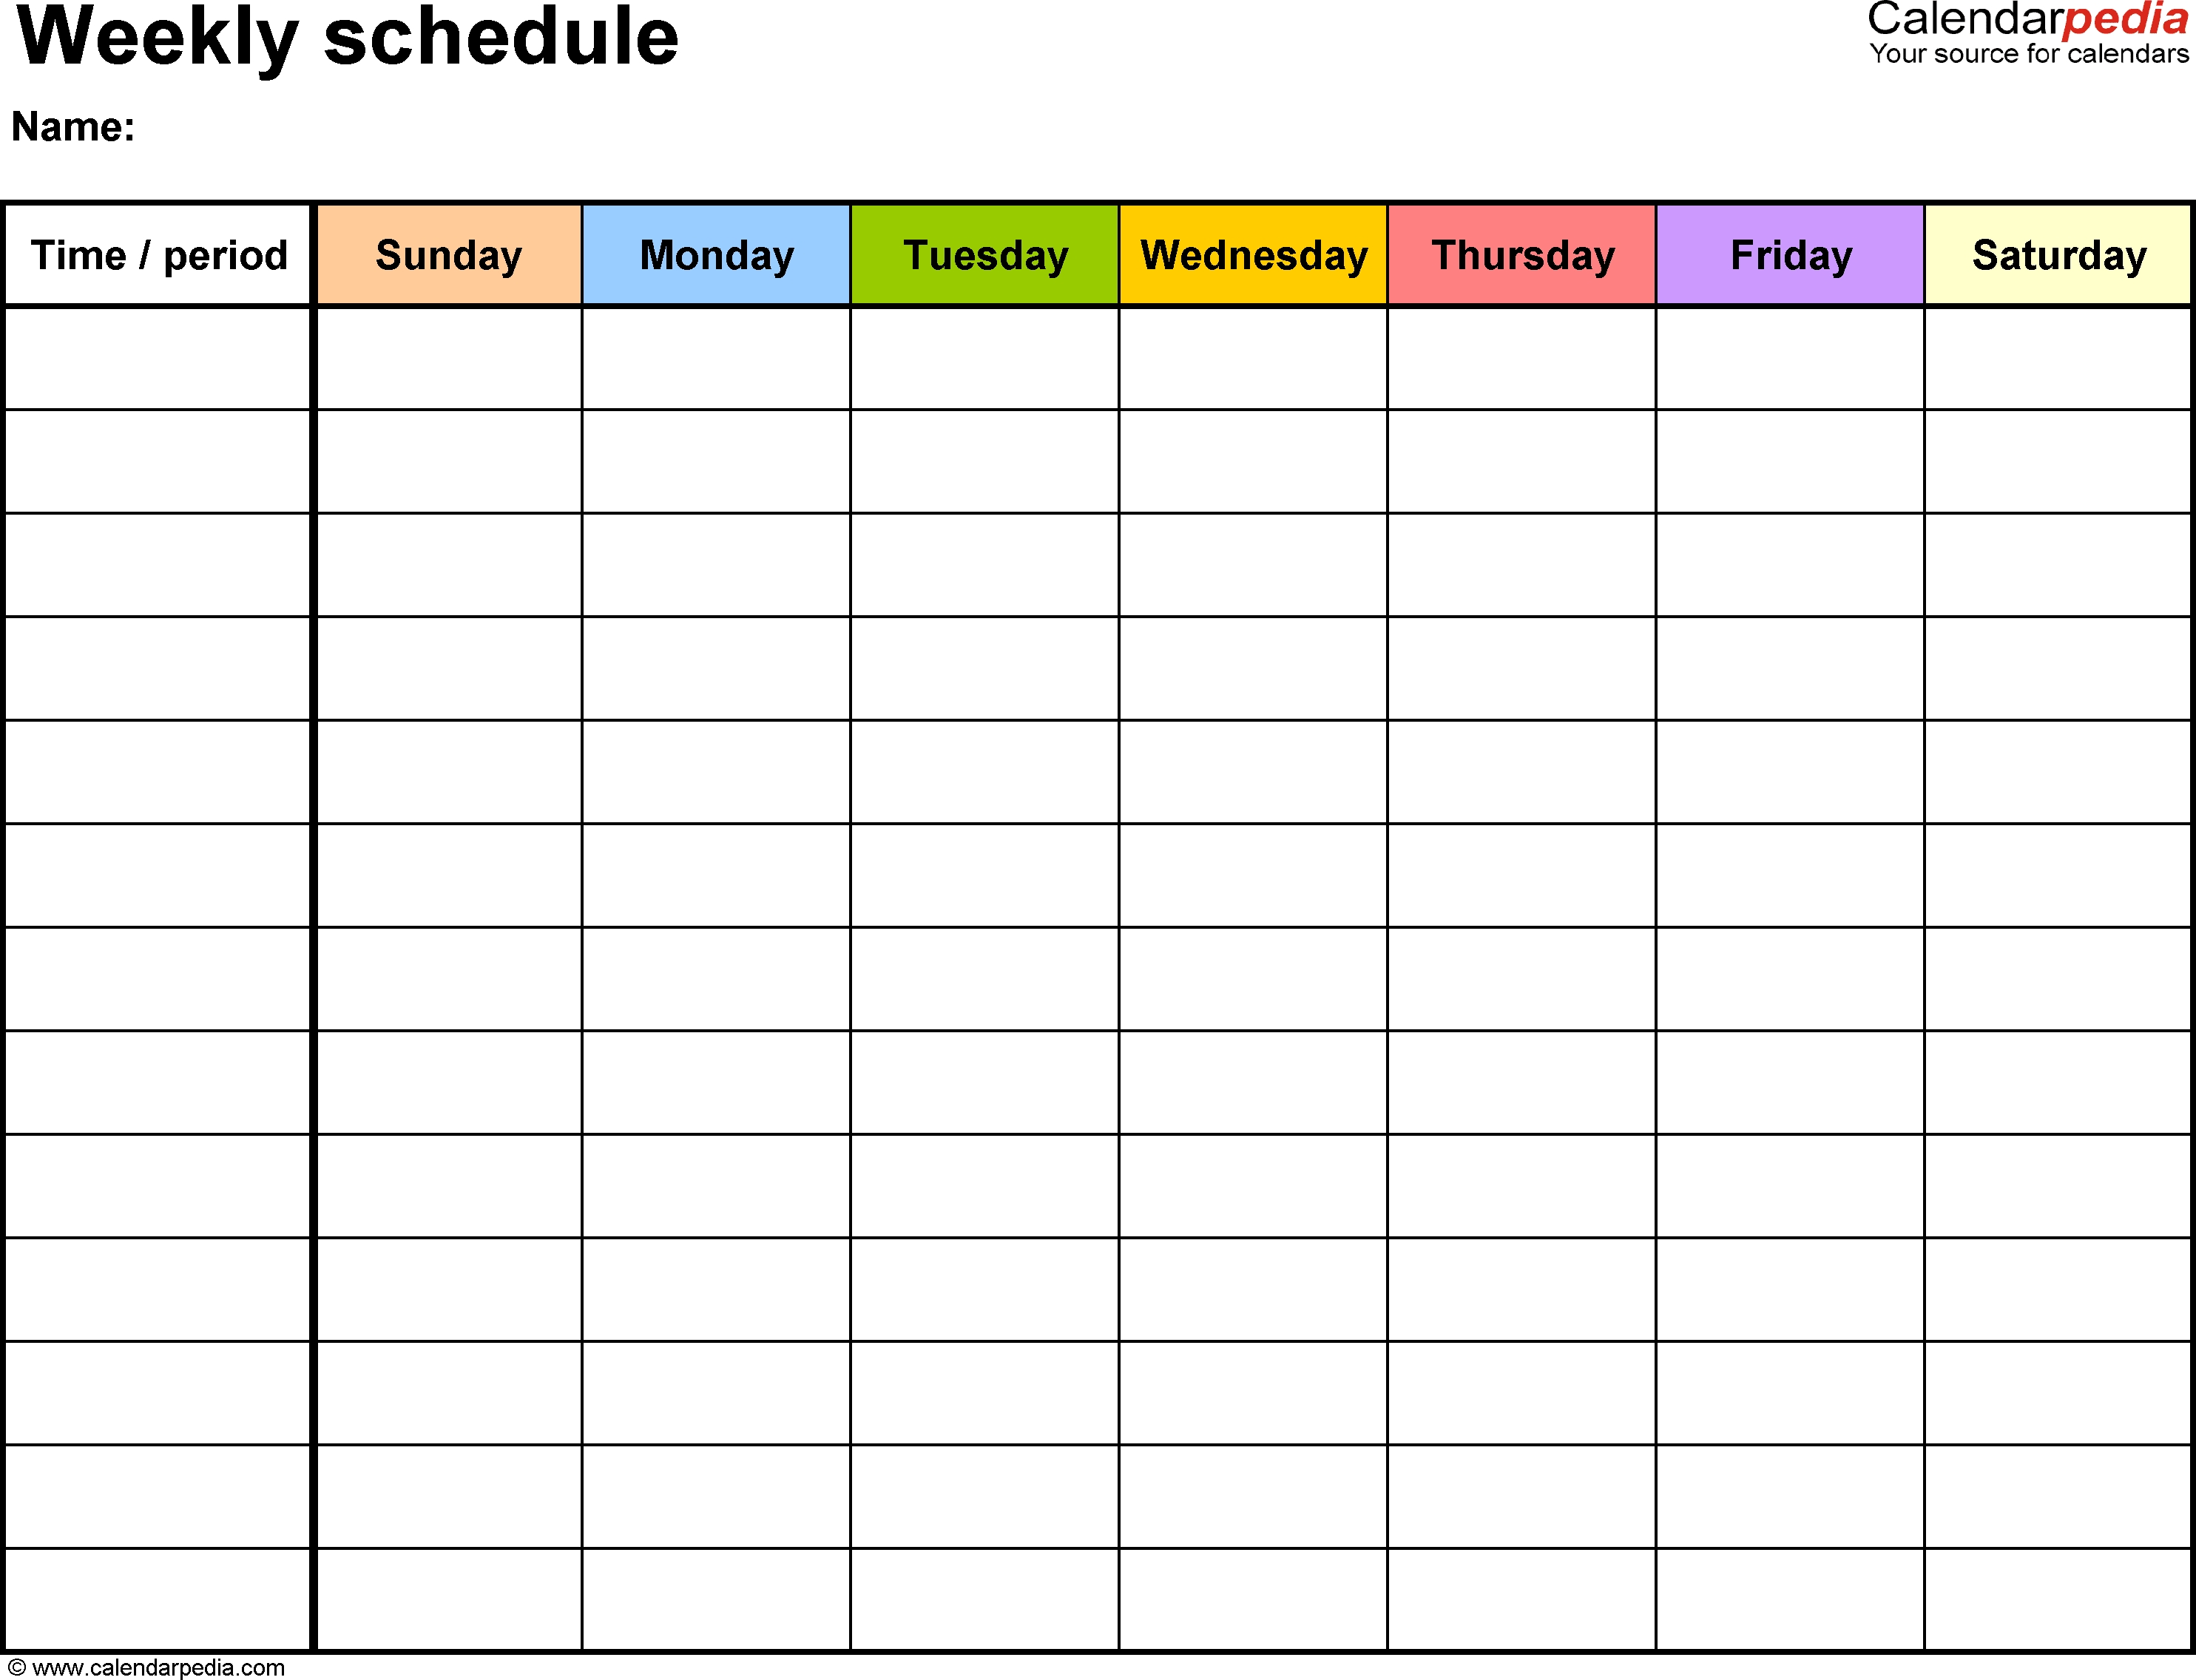 Free Weekly Schedule Templates For Excel - 18 Templates  Blank Schedule Sheet With Times